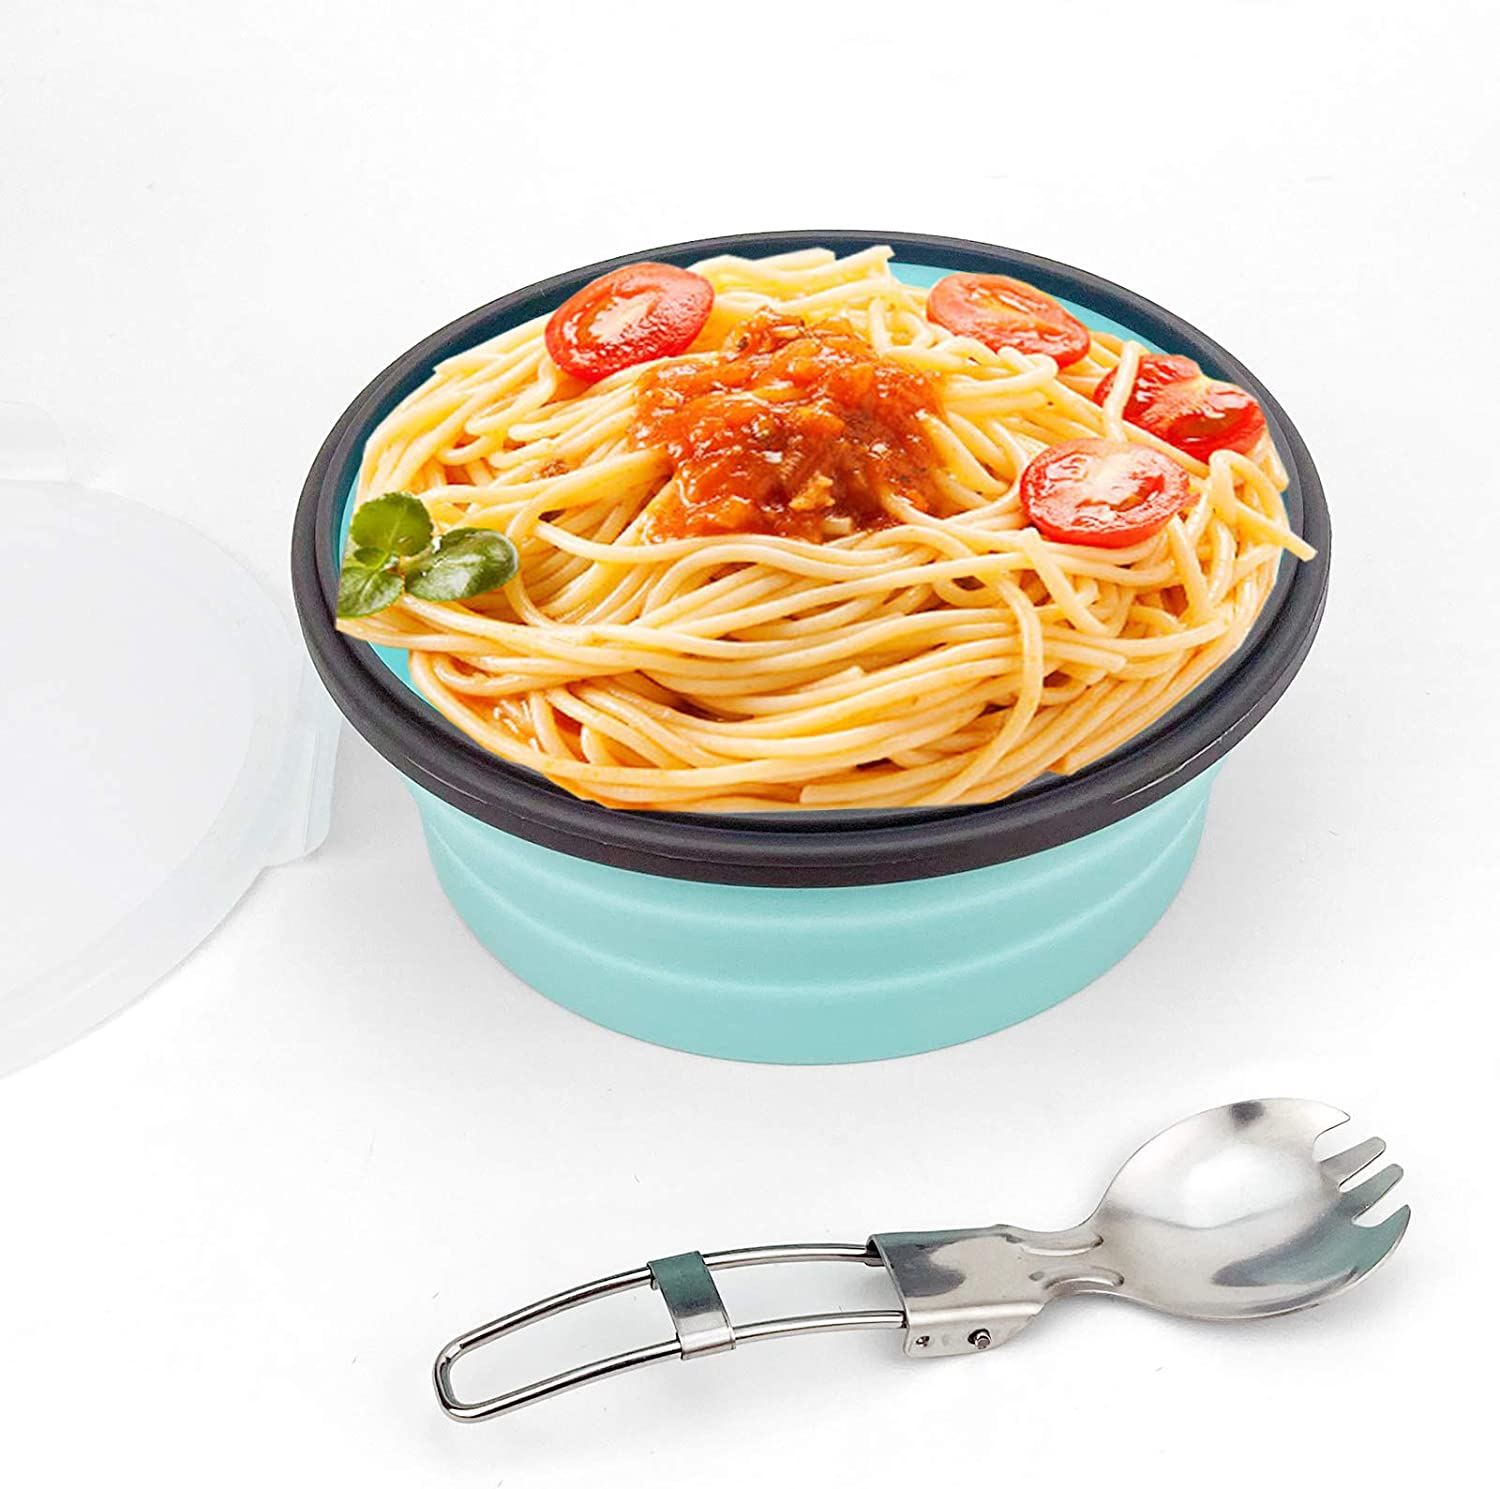 CCyanzi 1200ml Collapsible Camping Bowl Silicone Food Storage Container with Lid and Foldable Stainless Steel Fork Spoon, for Picnic, Travel, Camping, RV, Fridge and Microwave Bowls